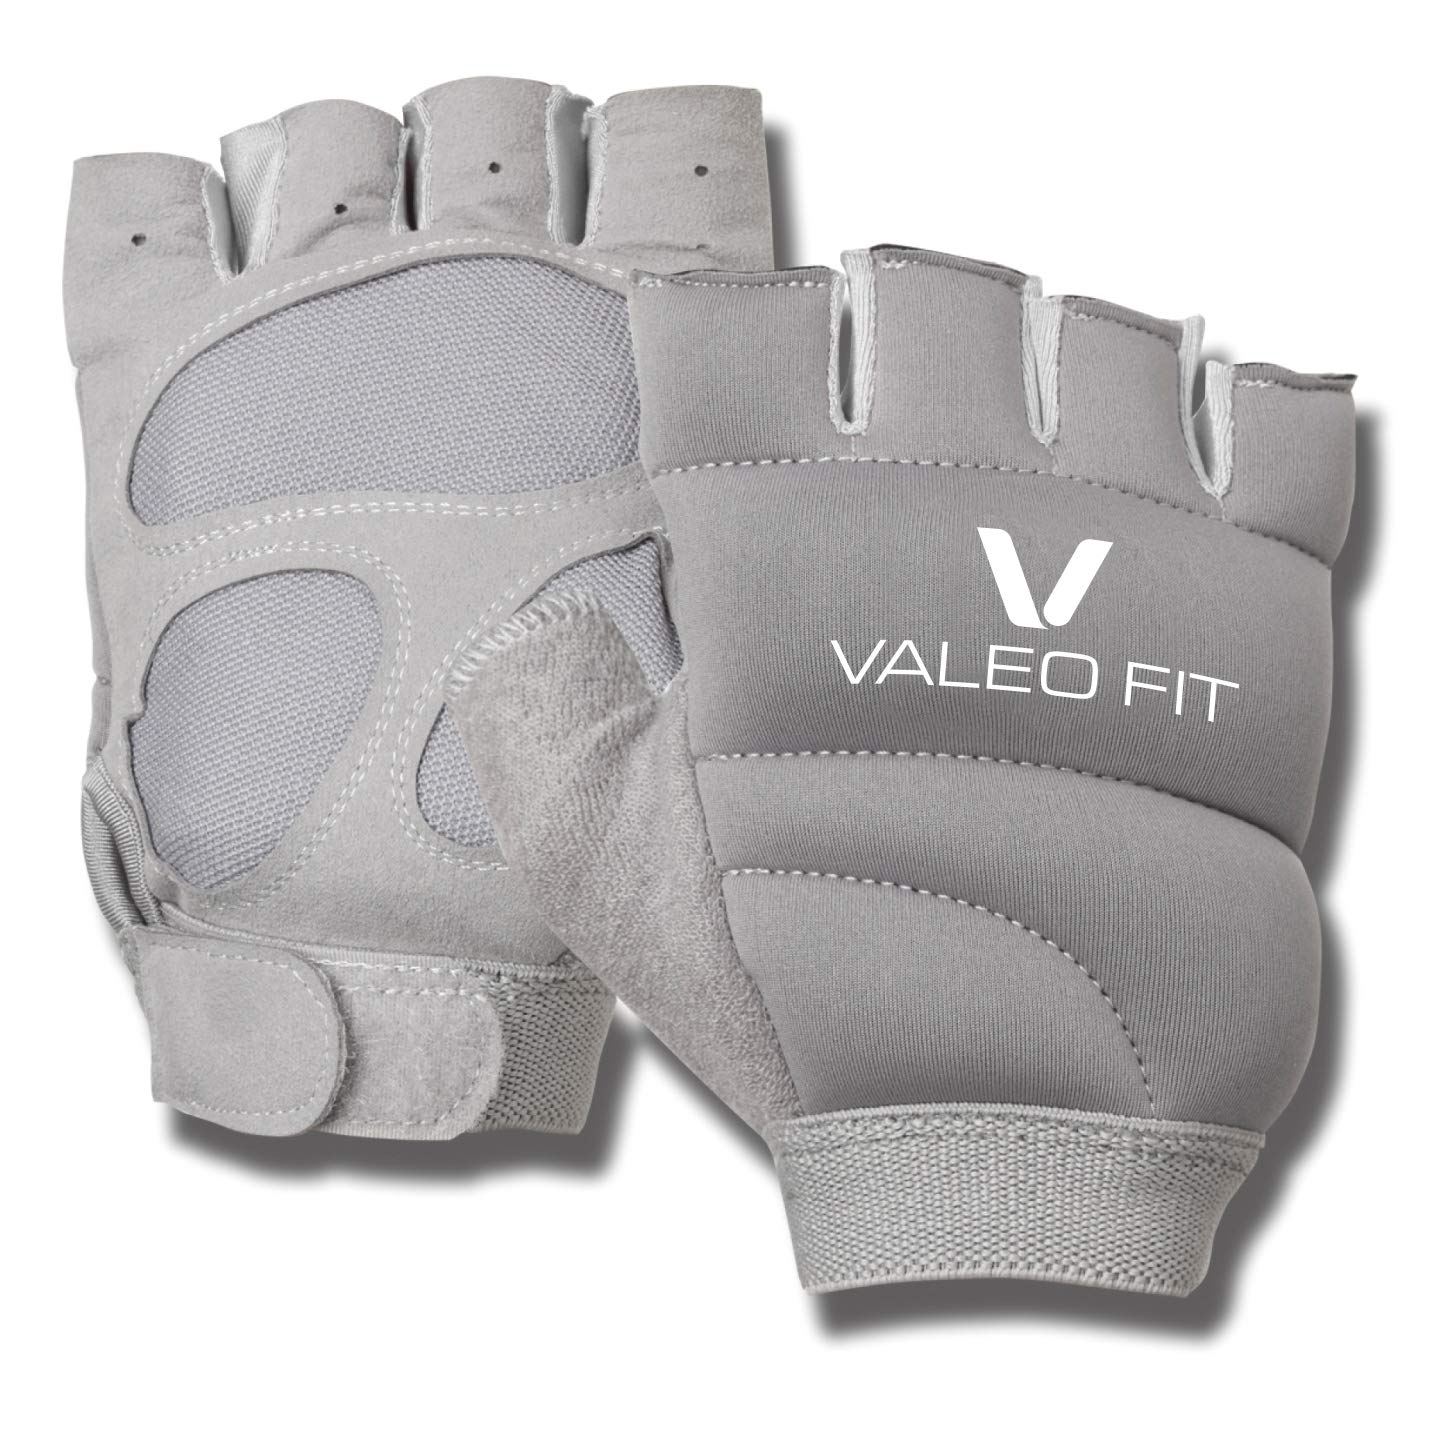 Valeo Weighted Fitness Kickboxing Workout